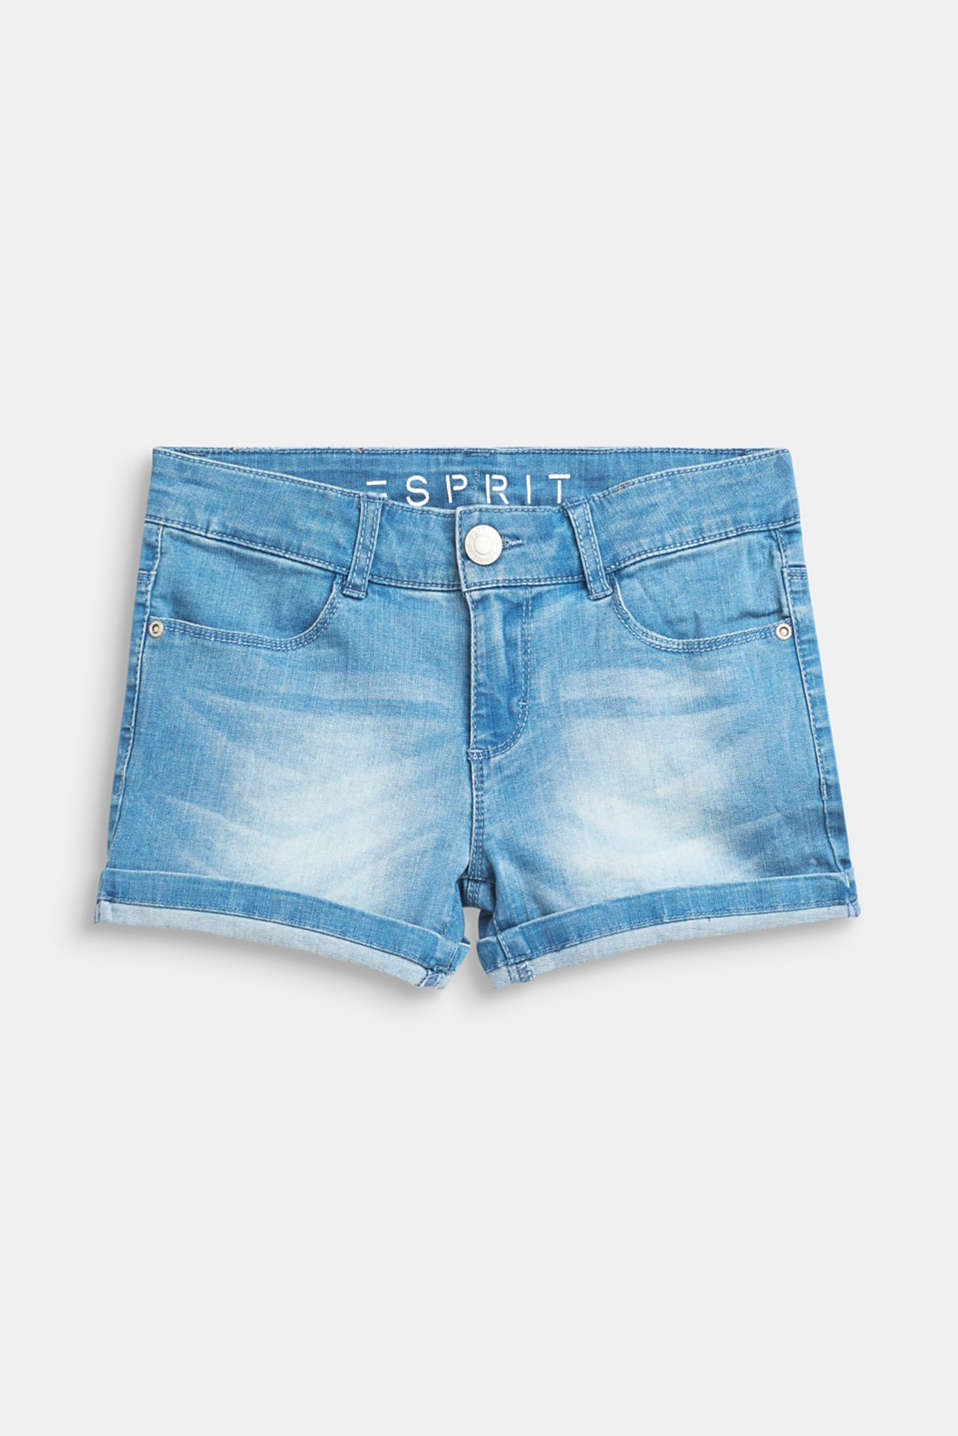 Esprit - Stretch denim shorts with turn-ups and an adjustable waistband